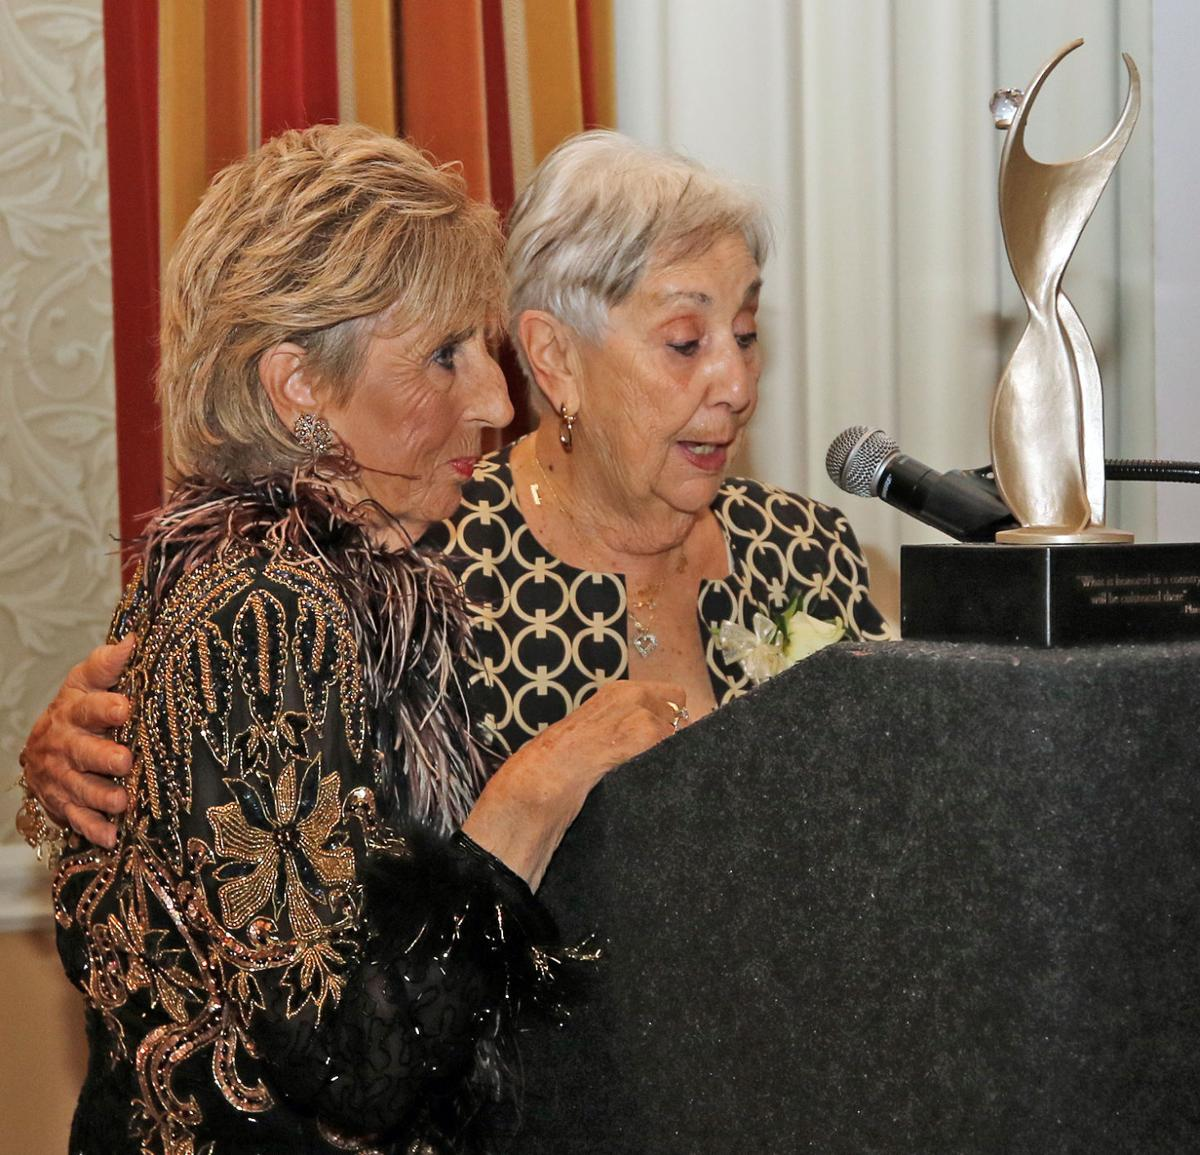 Geraldine Cunningham, President and CEO of First Financial Advisory Services in Westerly, introduces Angie Smith, recipient of the 2019 Athena Award. The 17th Annual Athena Awards Banquet was held Wednesday evening, October 23rd, 2019 at the Lake of Isles in North Stonington. | Jackie Turner, Special to The Sun.